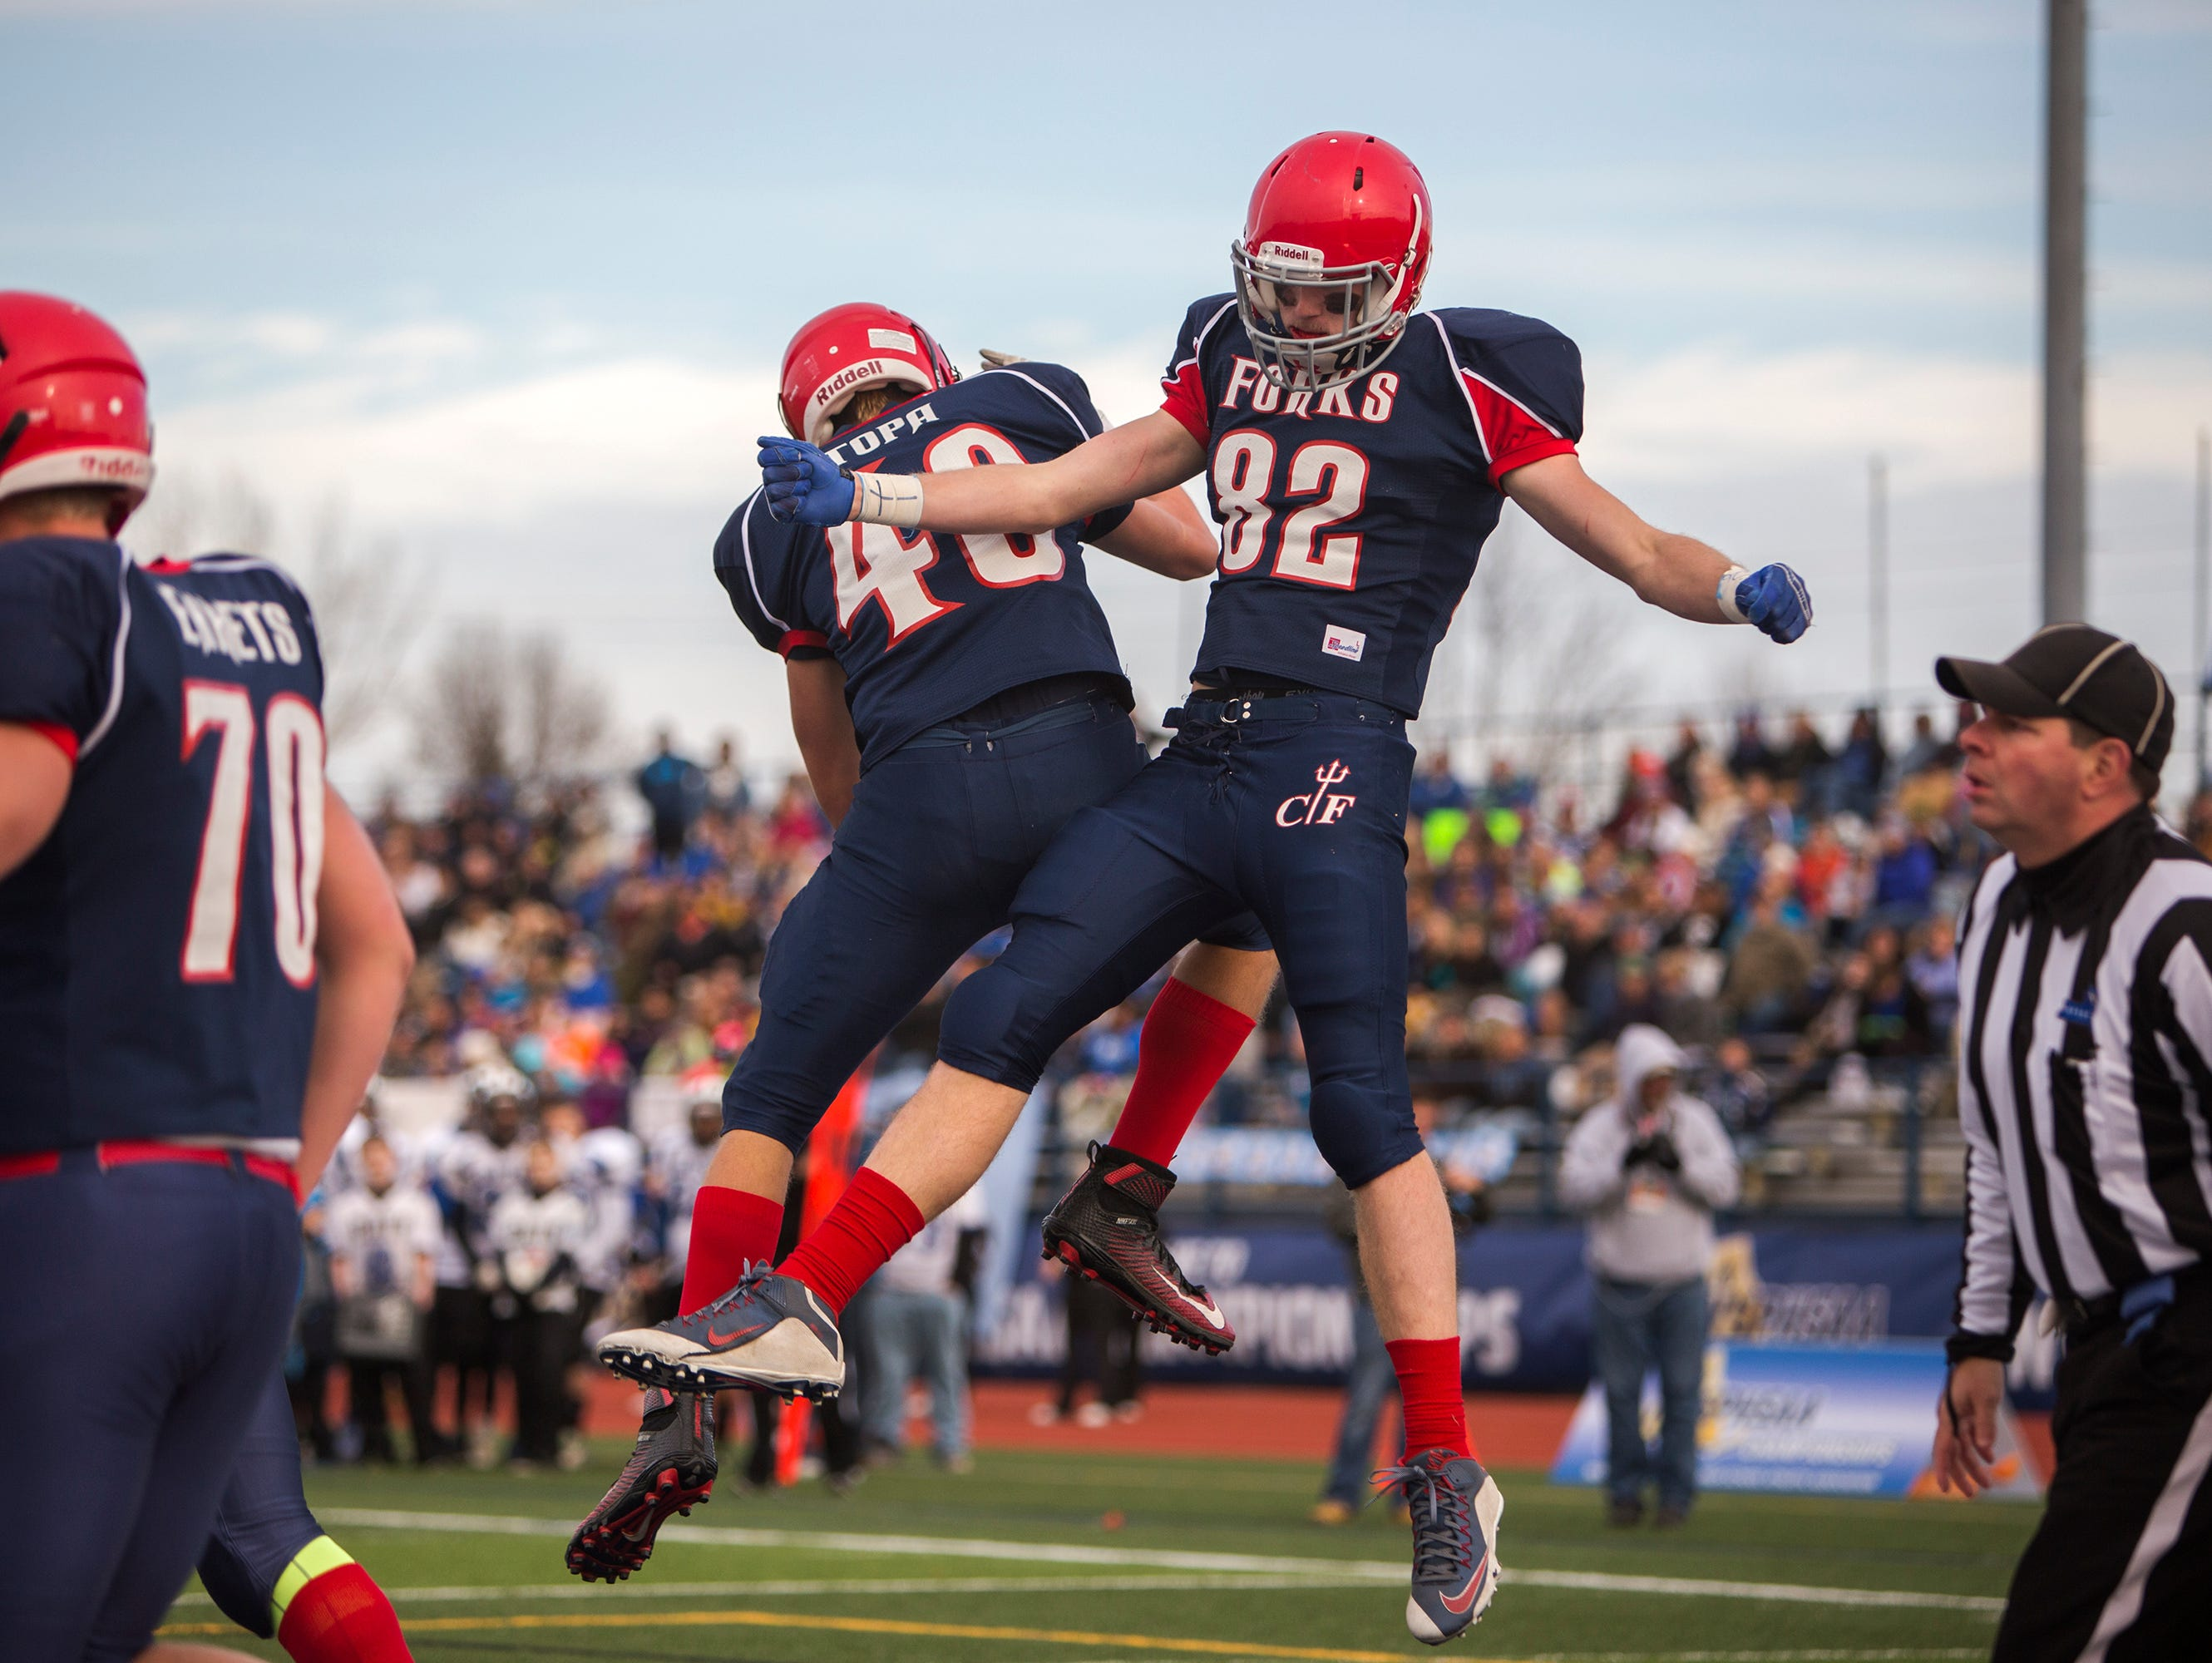 Chenango Forks tight end Trevor Borchardt, right, celebrates his first quarter touchdown reception with teammate Collin Topa in the Class C state playoff semifinal against Bath on Saturday, Nov. 21, 2015.